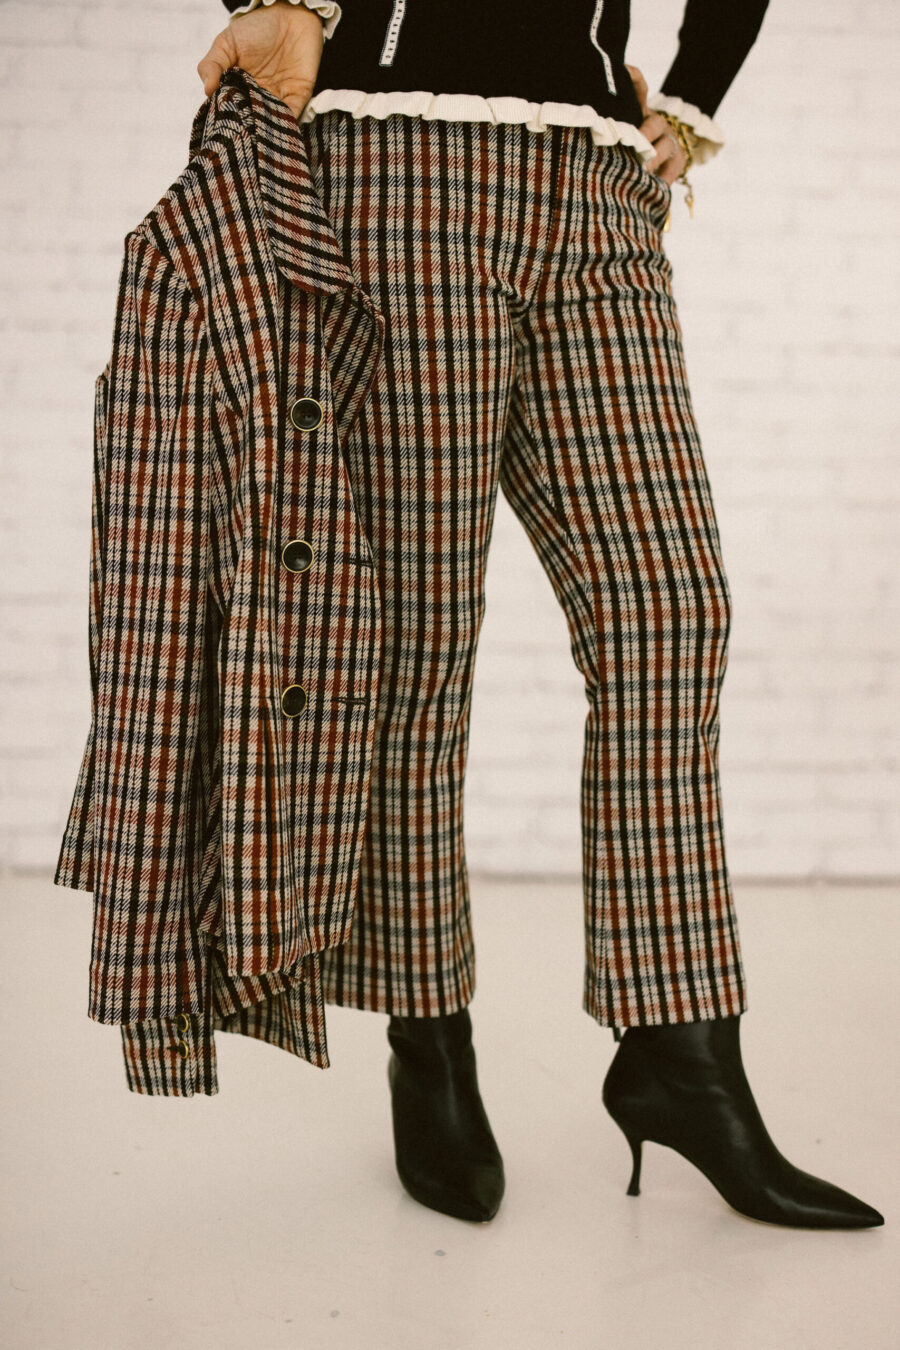 Plaid pants with black boots